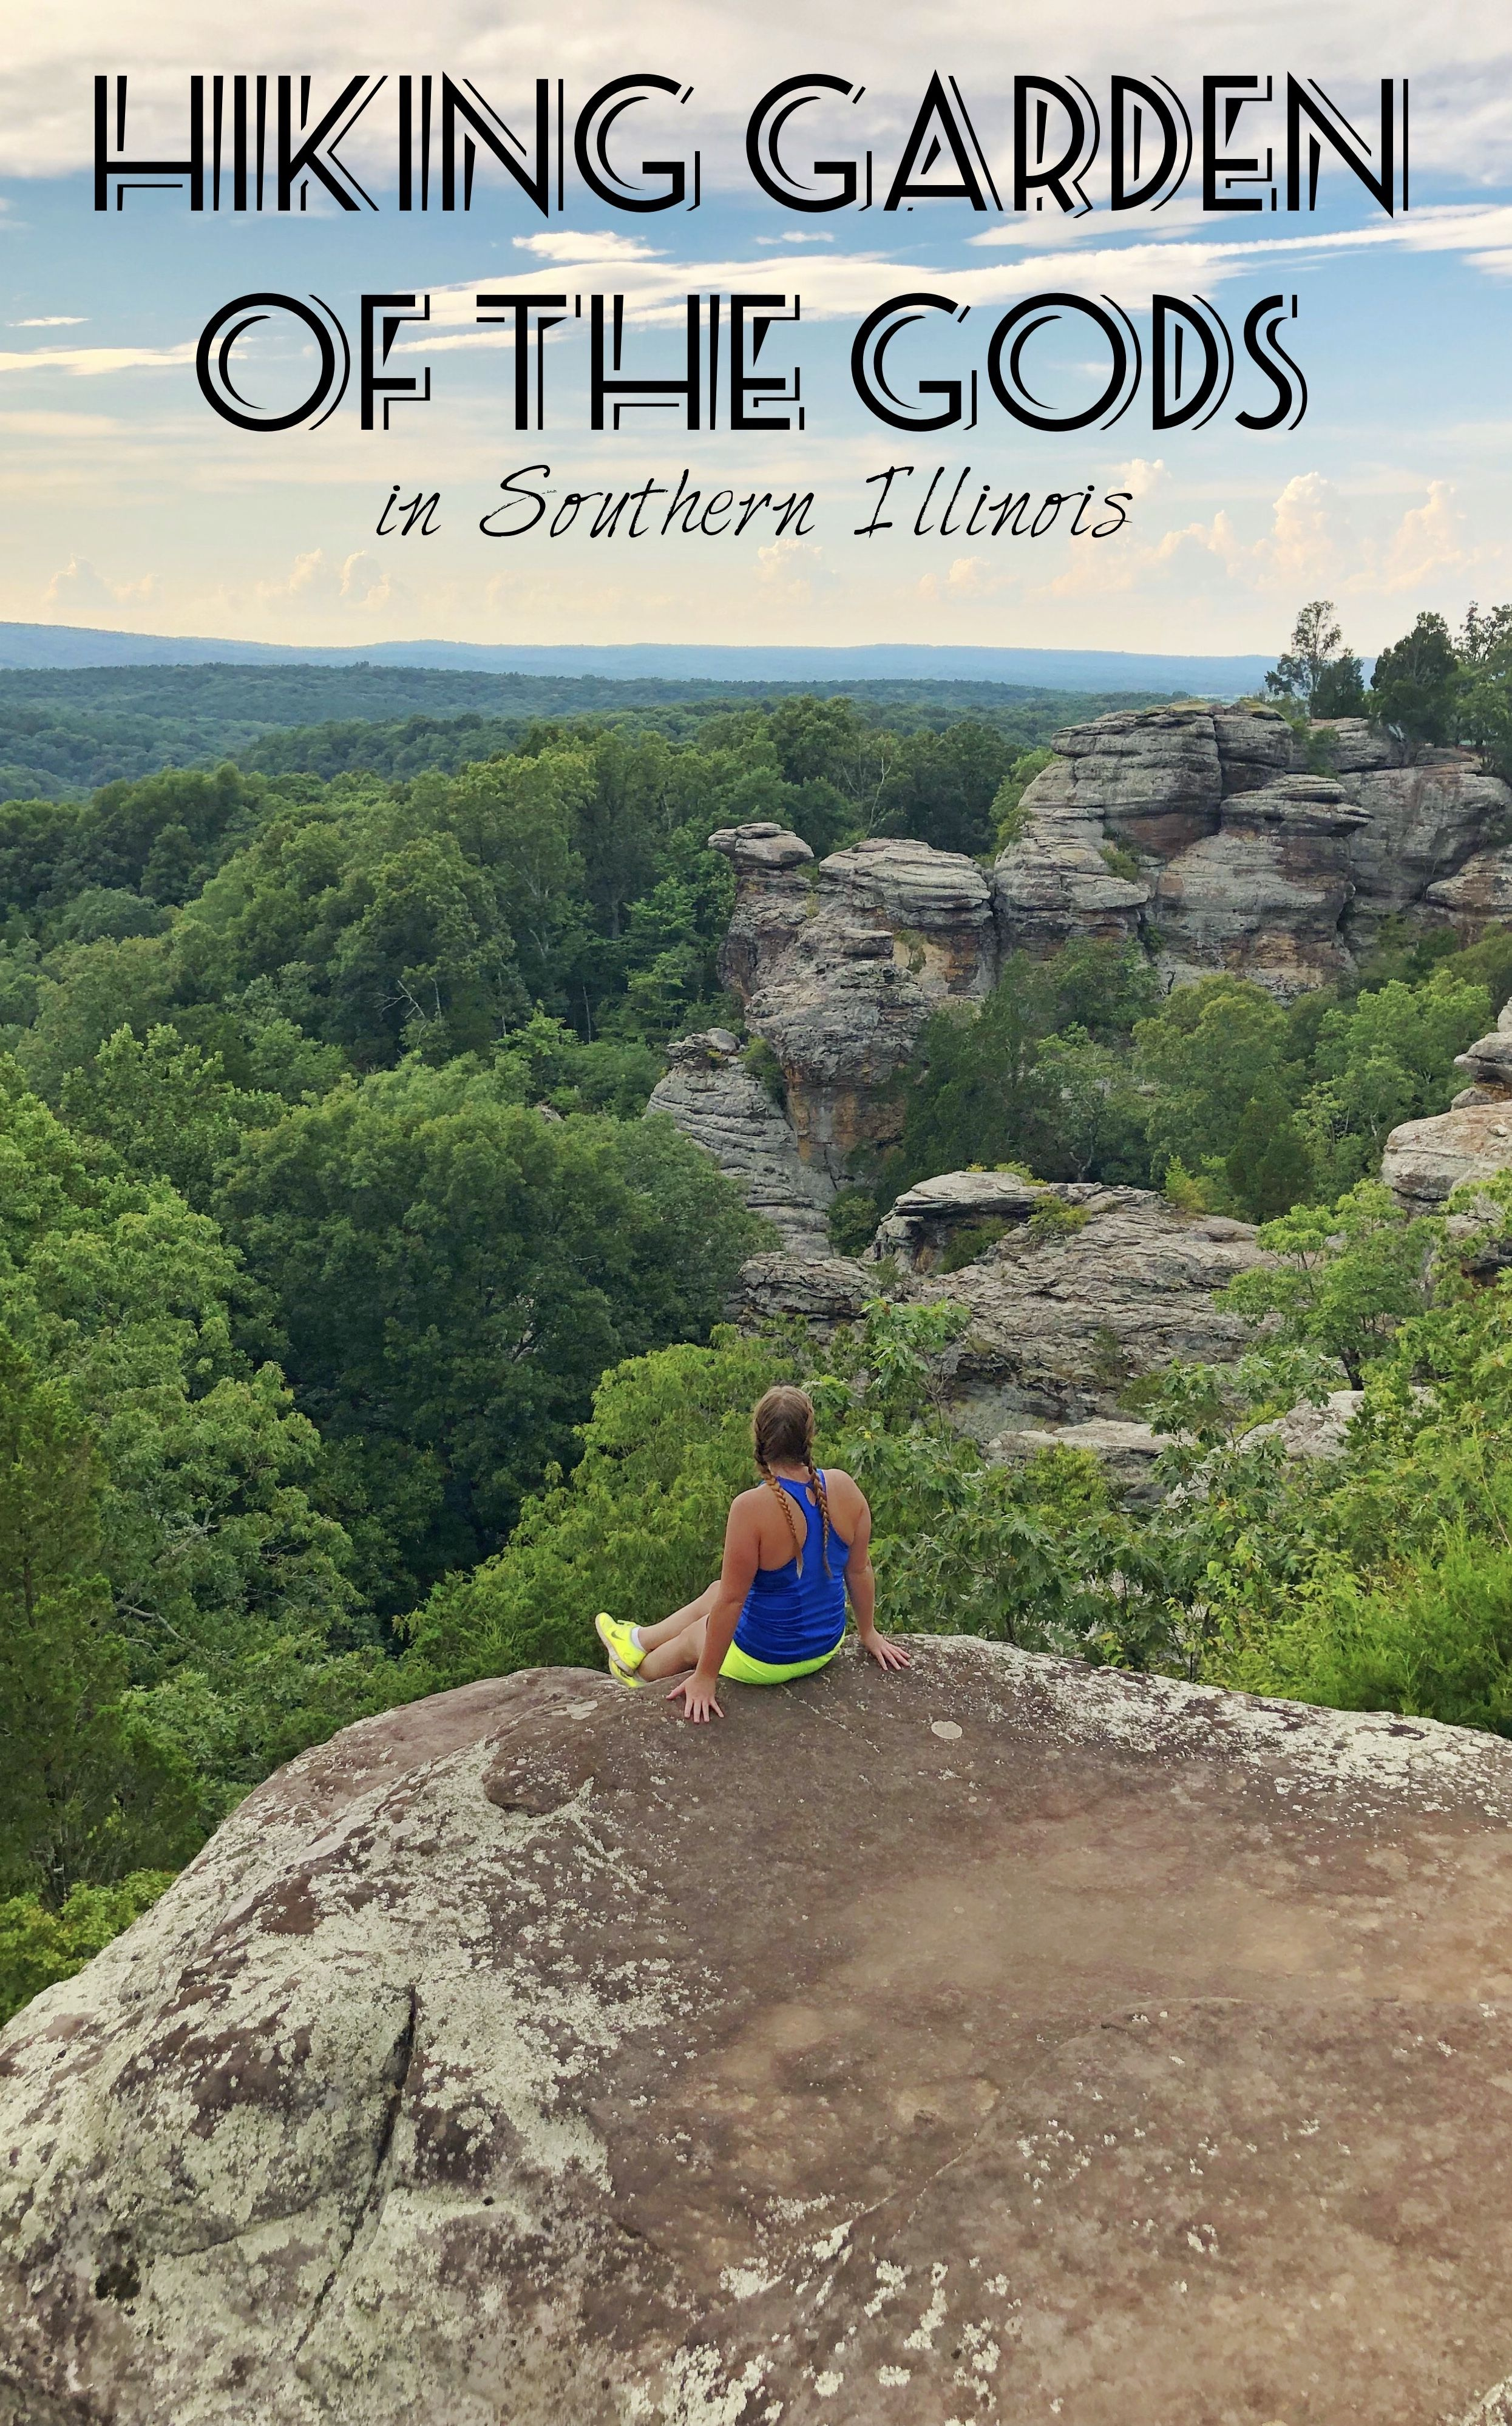 Garden Of The Gods In Southern Illinois Wandering